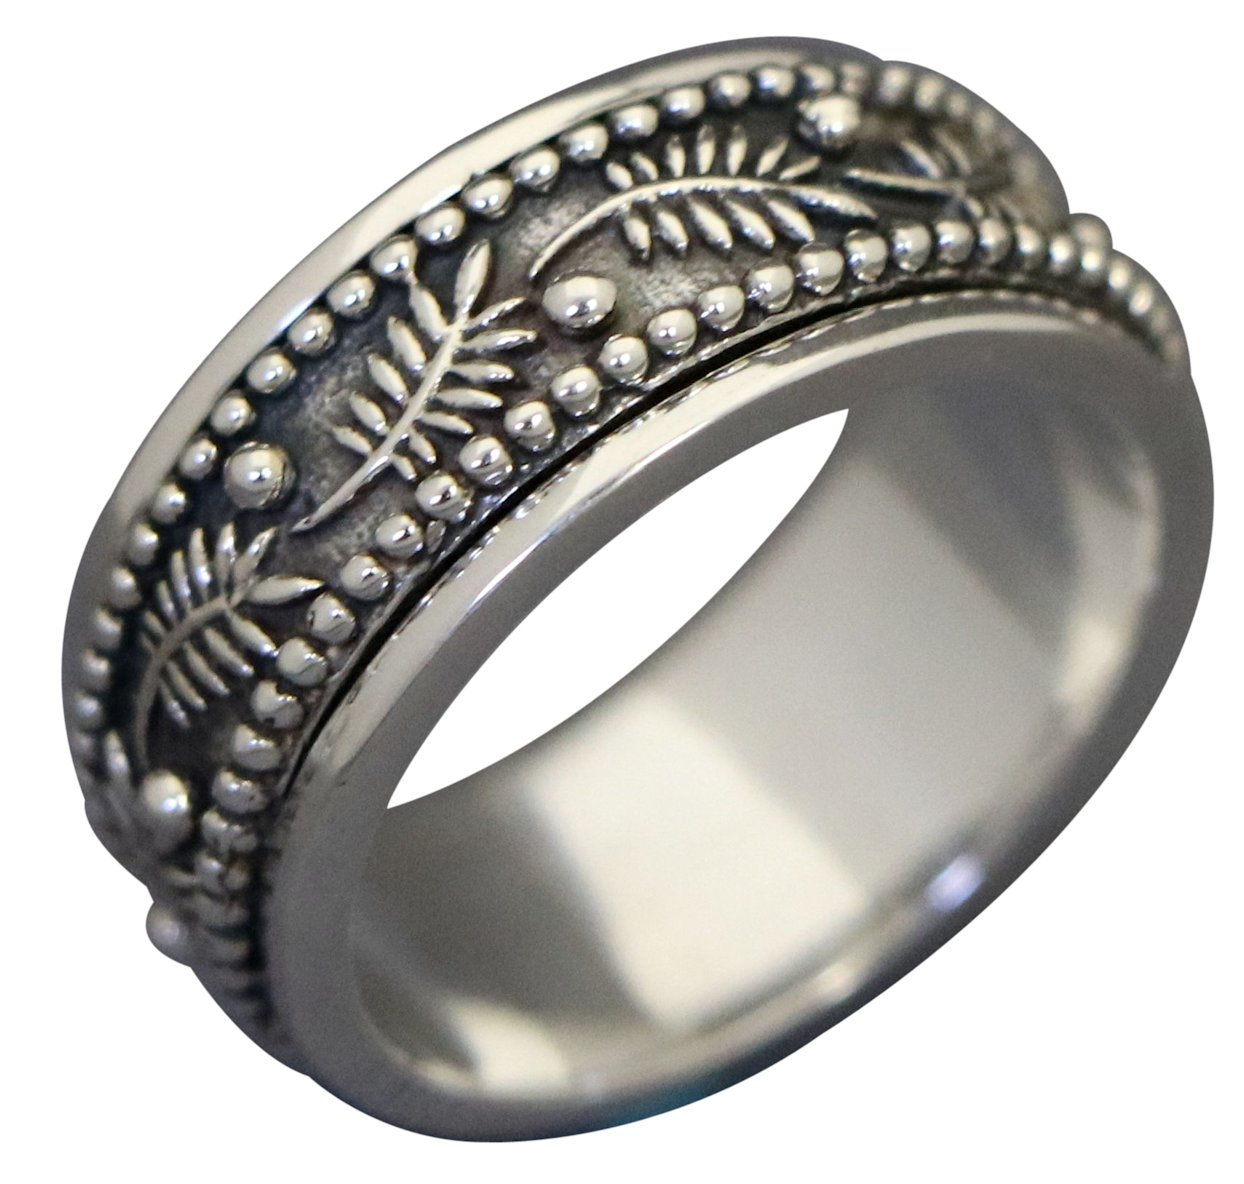 Energy Stone PALM LEAF Meditation Spinning Ring in Sterling Silver Designed by Viola So (Style# US42) (10) by Energy Stone (Image #1)